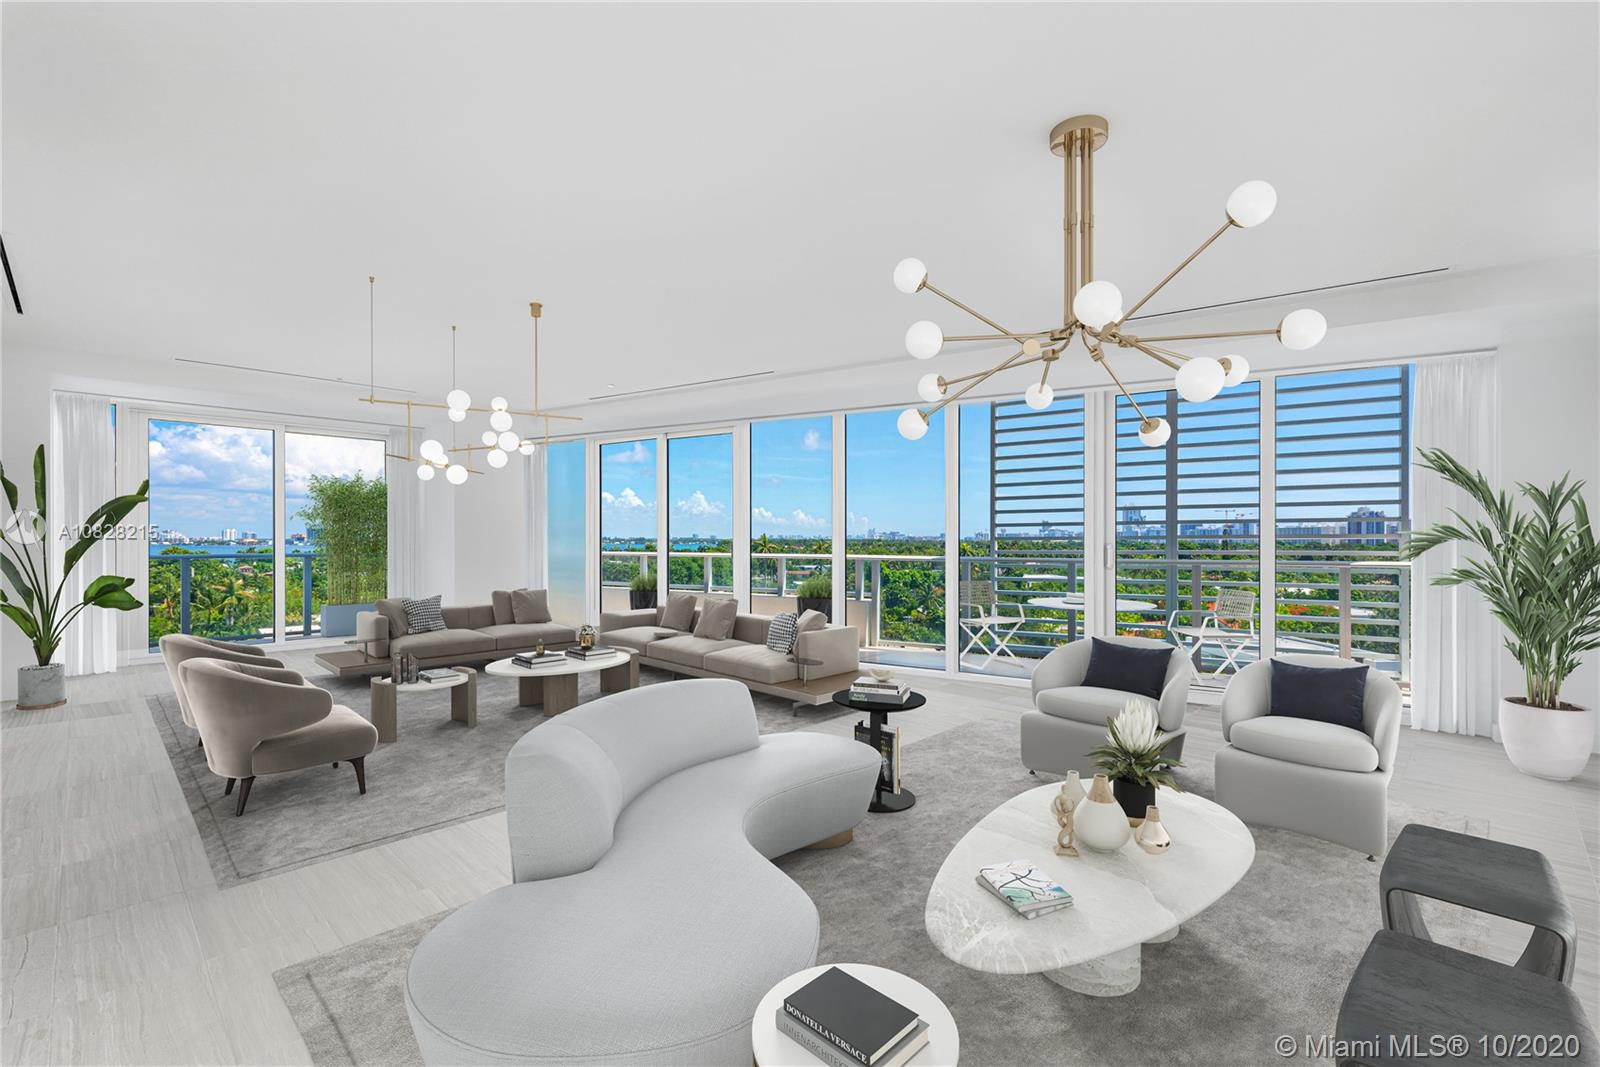 The Ritz-Carlton Residences, Miami Beach offers 111 luxury residences designed by Piero Lissoni. This corner residence boasts walls of glass embracing natural light throughout expansive living spaces and wraparound terrace overlooking Surprise Lake, Biscayne Bay, and Downtown Miami. Exquisitely finished with stone and wood flooring, Boffi kitchen with gas cooktop, Gaggenau appliances, and Zucchetti fixtures. Full-service building managed by The Ritz-Carlton and amenities including a marina, spa, rooftop restaurant and pool. Immediate occupancy.